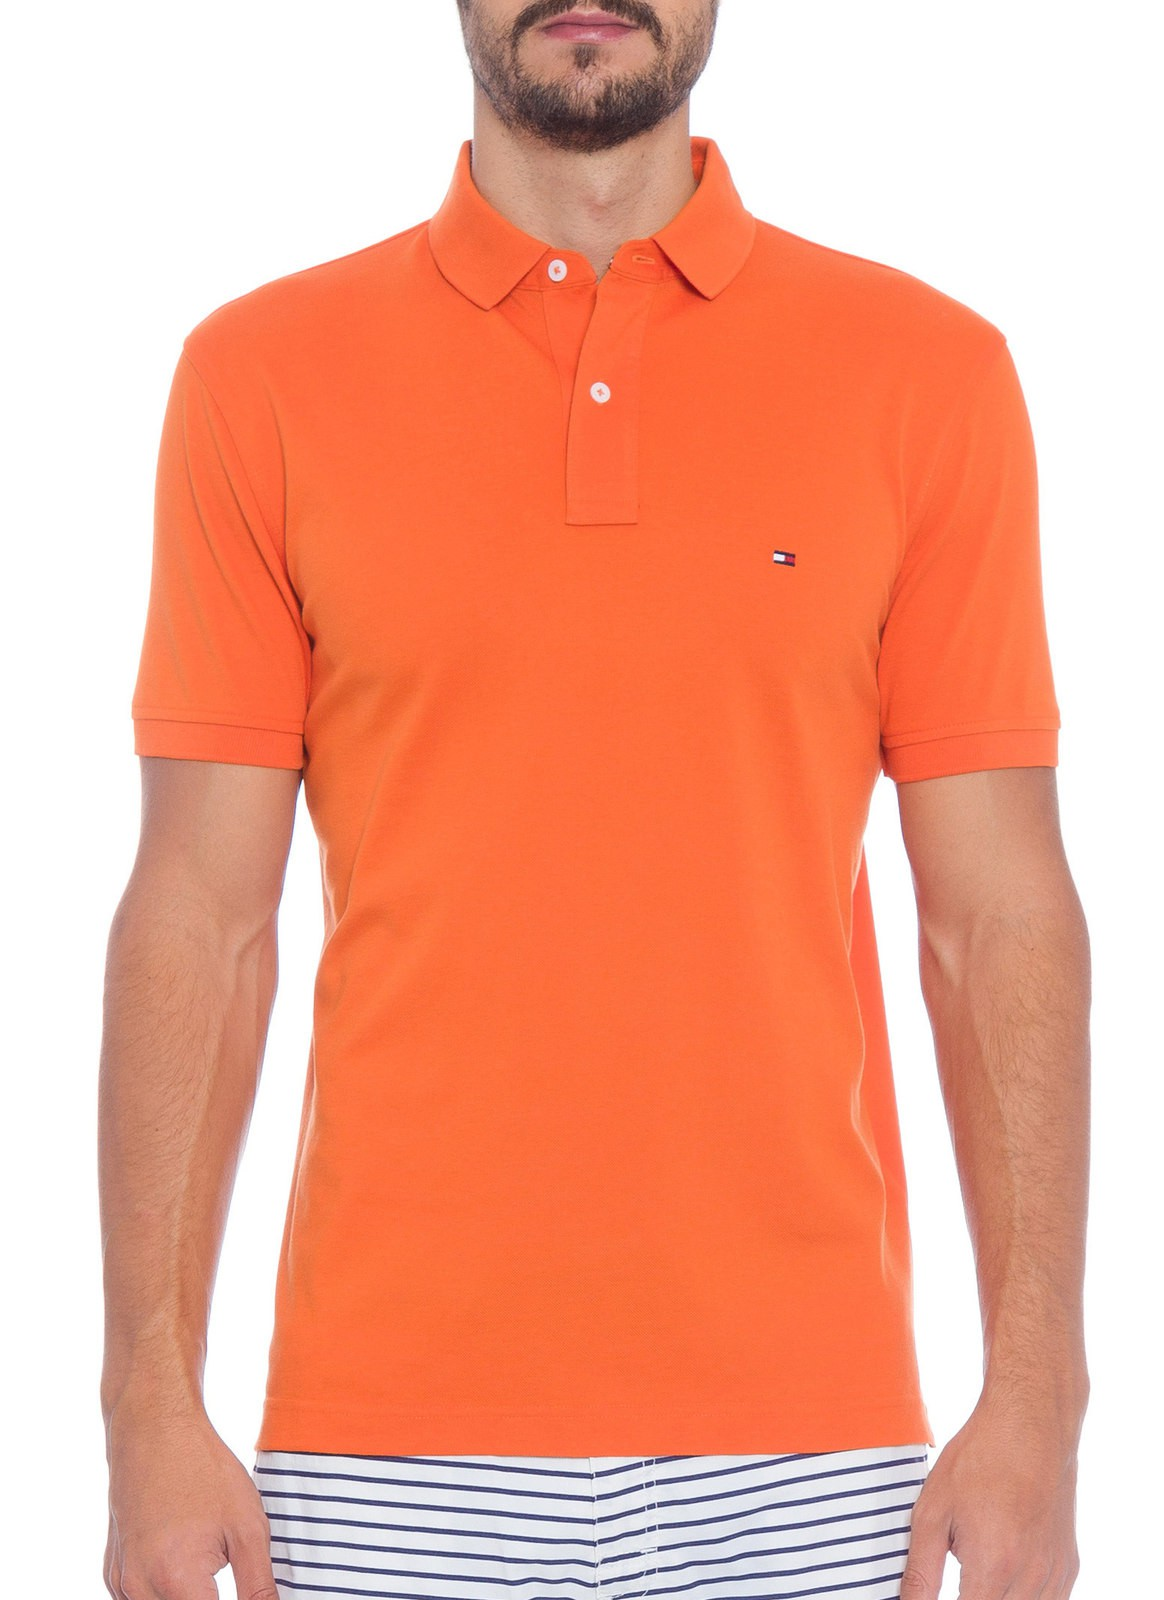 Polo Tommy Hilfiger Masculino Regular Fit Laranja